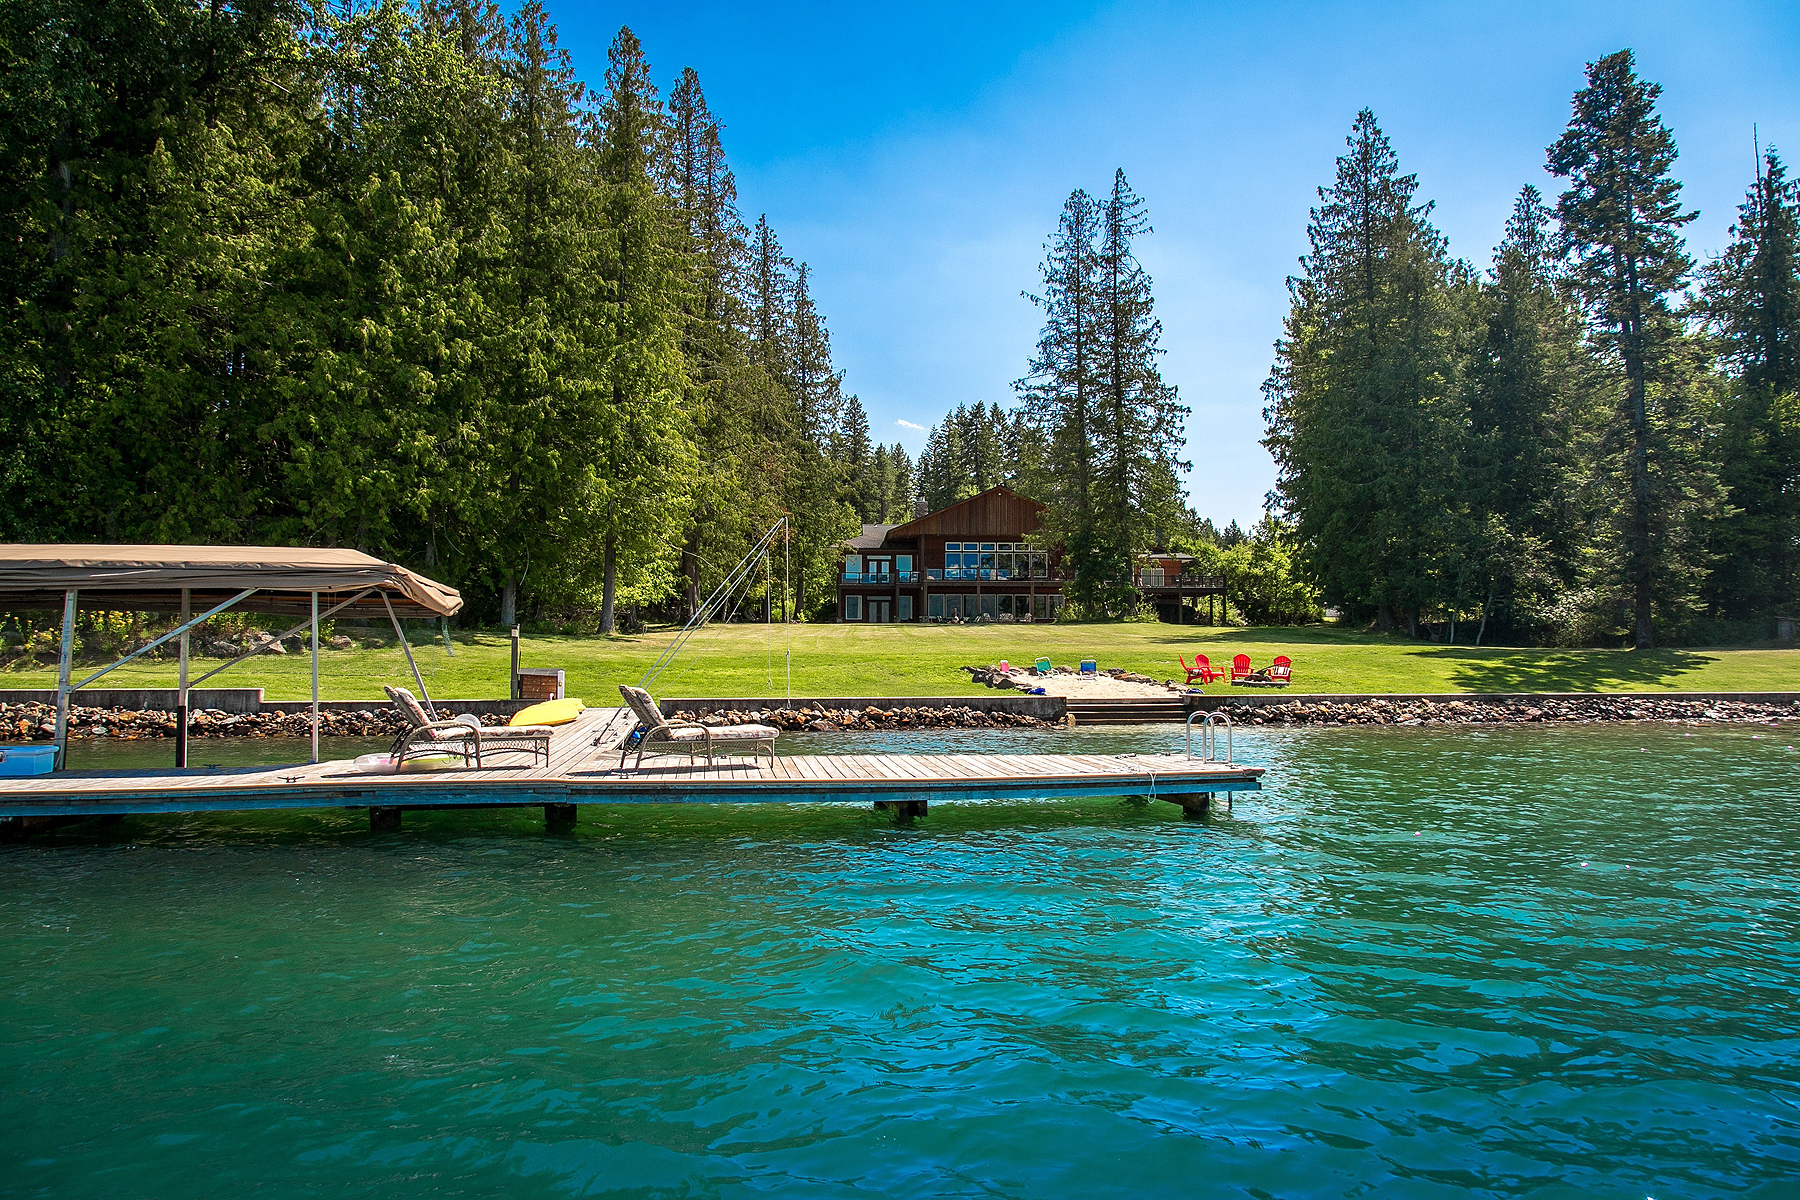 Villa per Vendita alle ore Waterfront home at Murphy Bay on the Pend Oreille River! 127 Hubbard Ln Sagle, Idaho, 83860 Stati Uniti